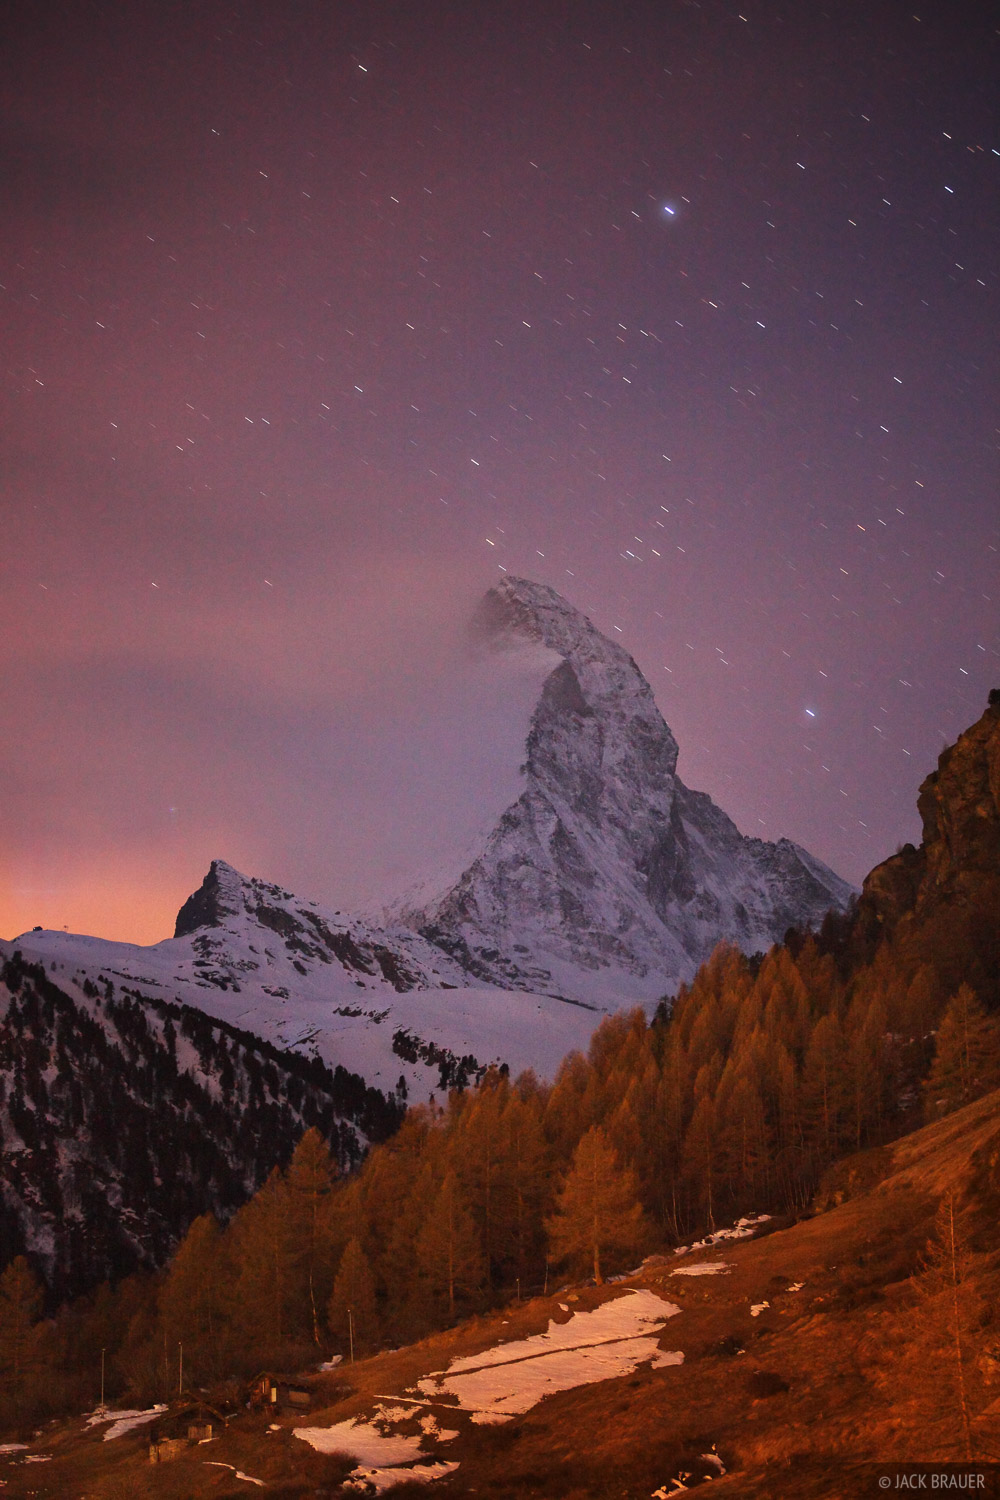 Matterhorn, Zermatt, Switzerland, stars, Pennine, photo